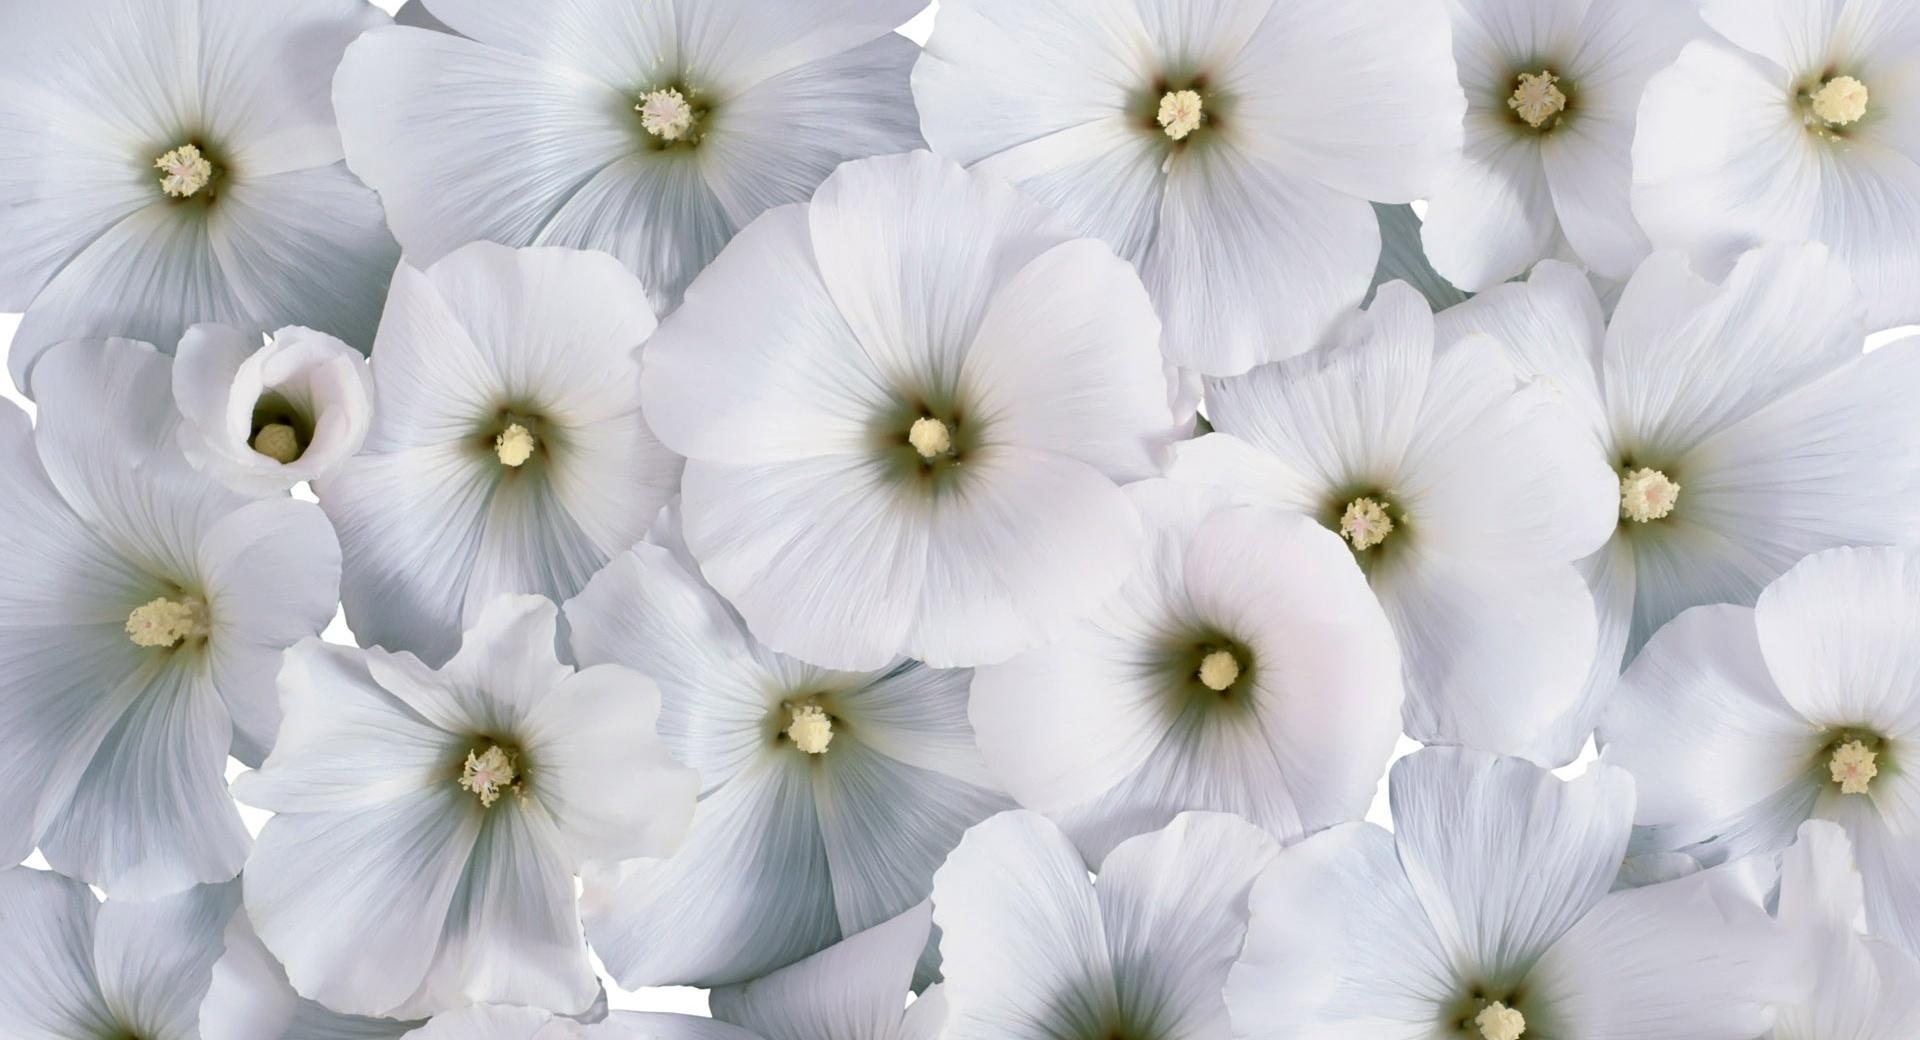 Soft White Flowers wallpapers HD quality